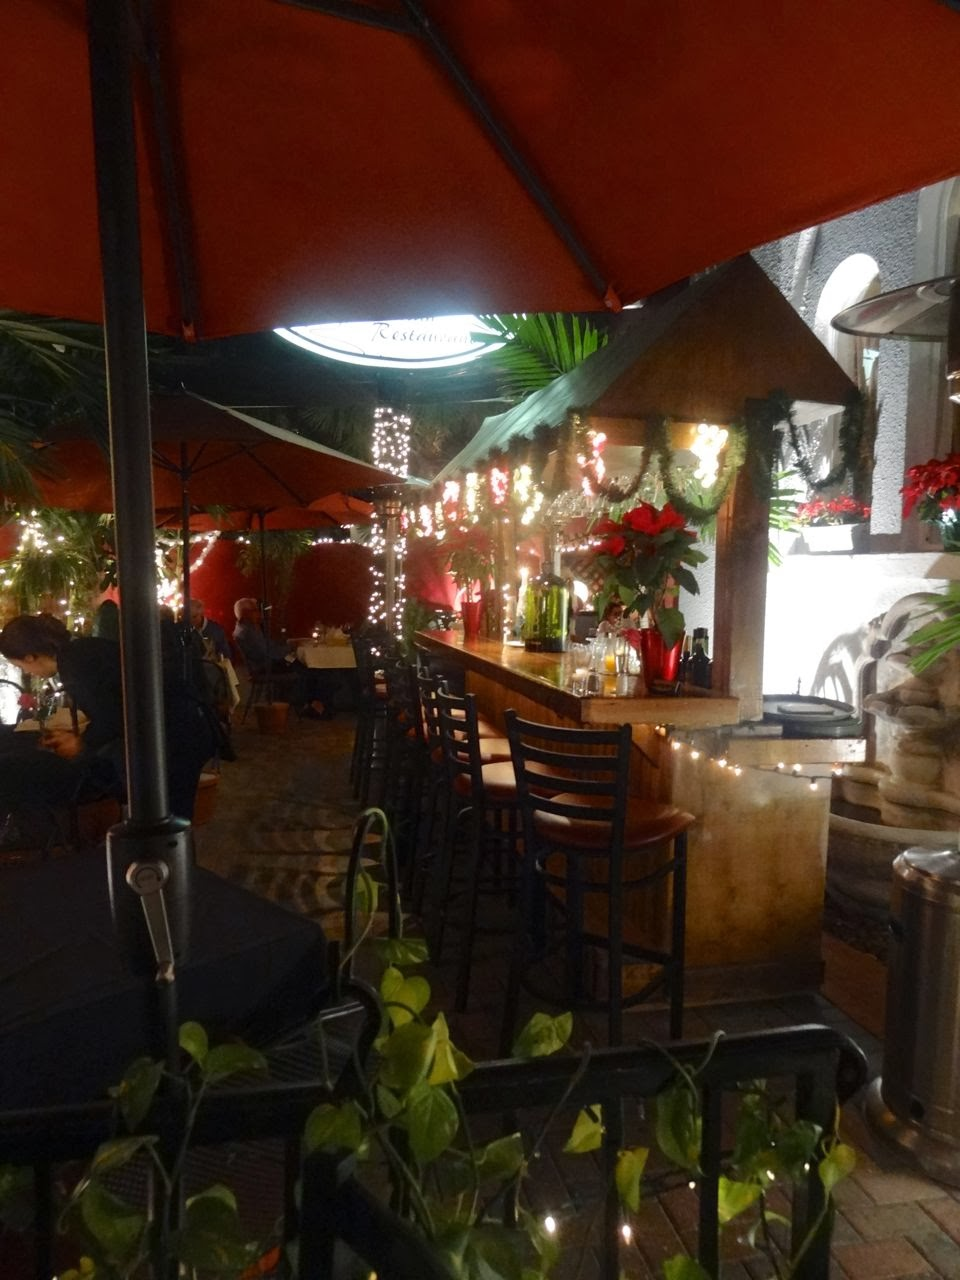 Tucked Away On Picturesque Palm Avenue In A Small Two Story Home Built 1926 Casantica Is One Of Sarasota S Prettiest Italian Restaurants